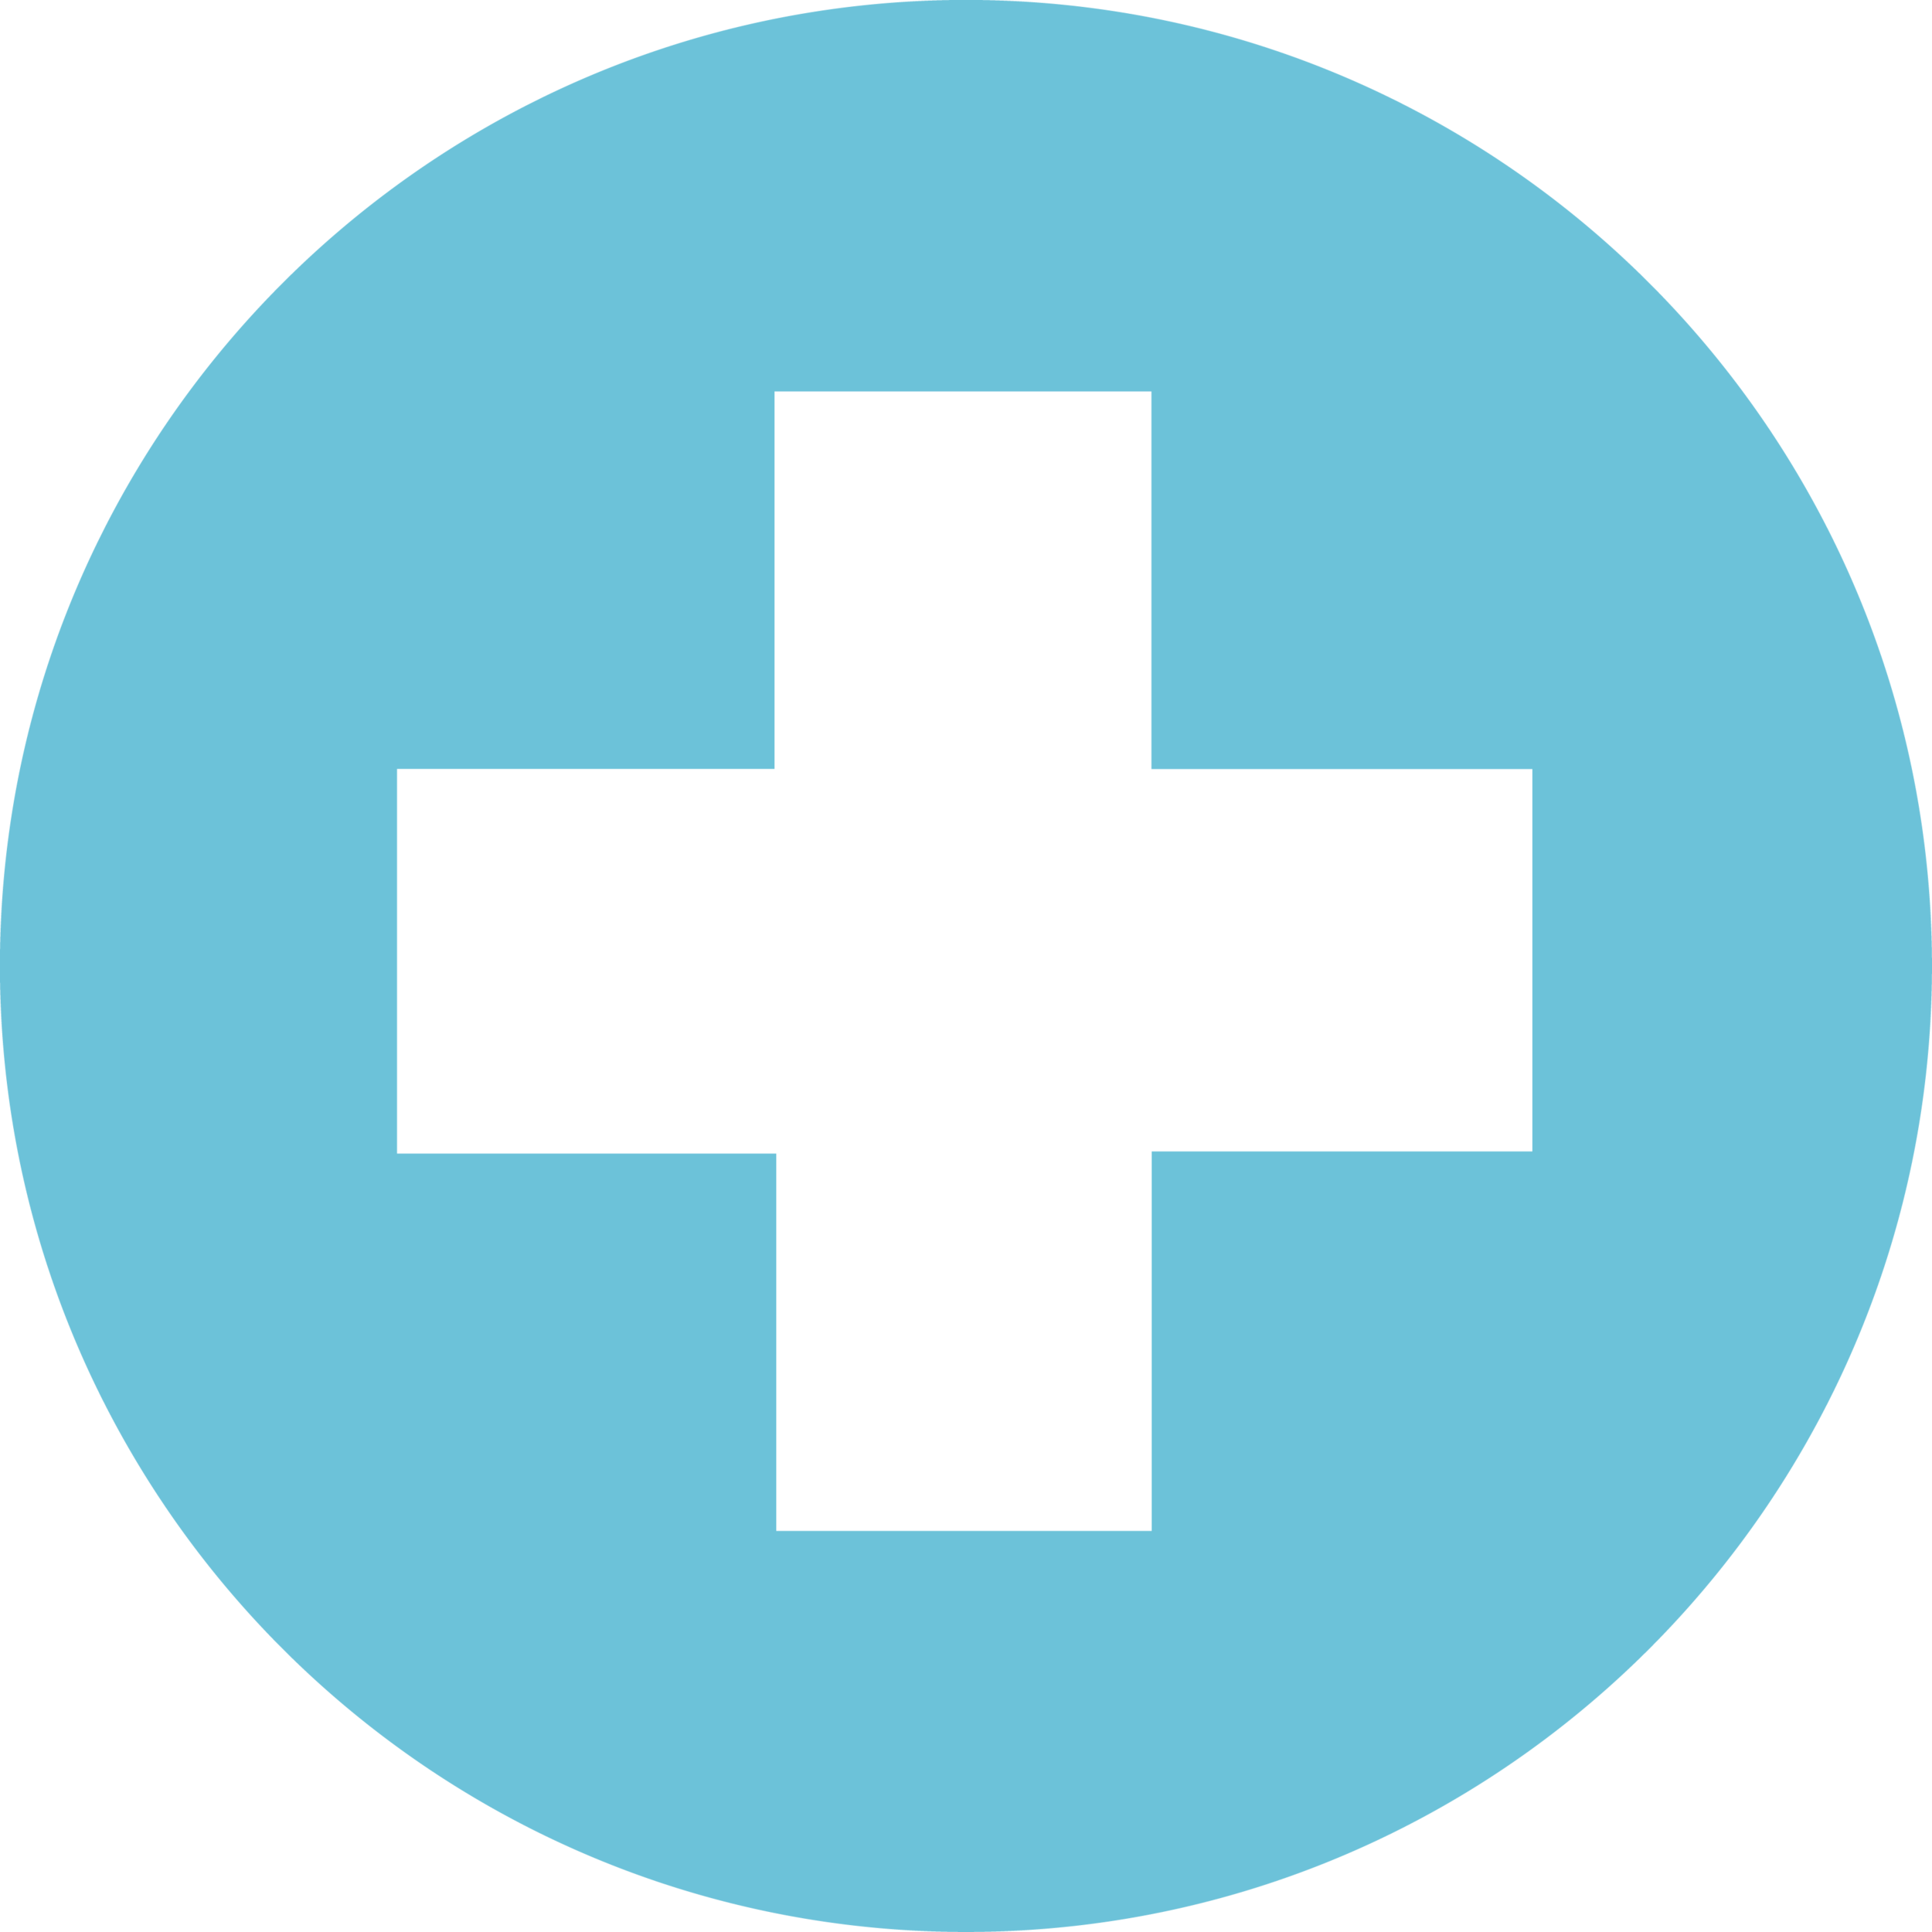 Treatment icon watkins spine back pain.png